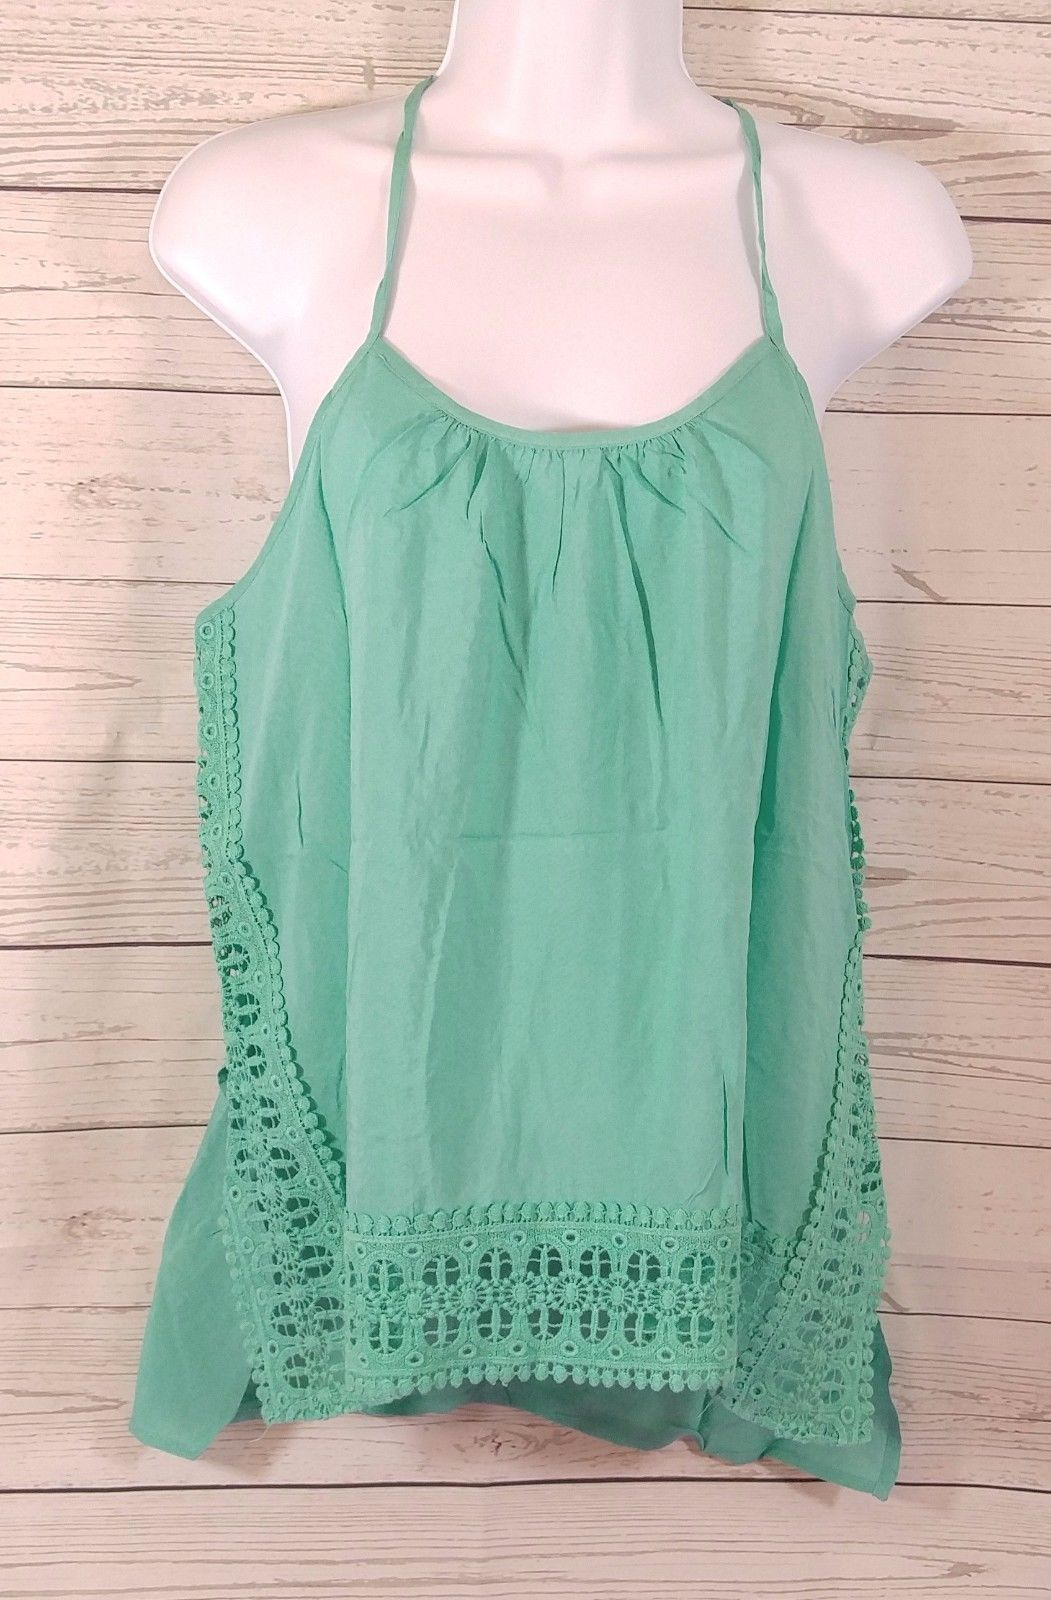 Primary image for Loveriche Women's Mint  Crochet Spaghetti Strap Top Size-Large New